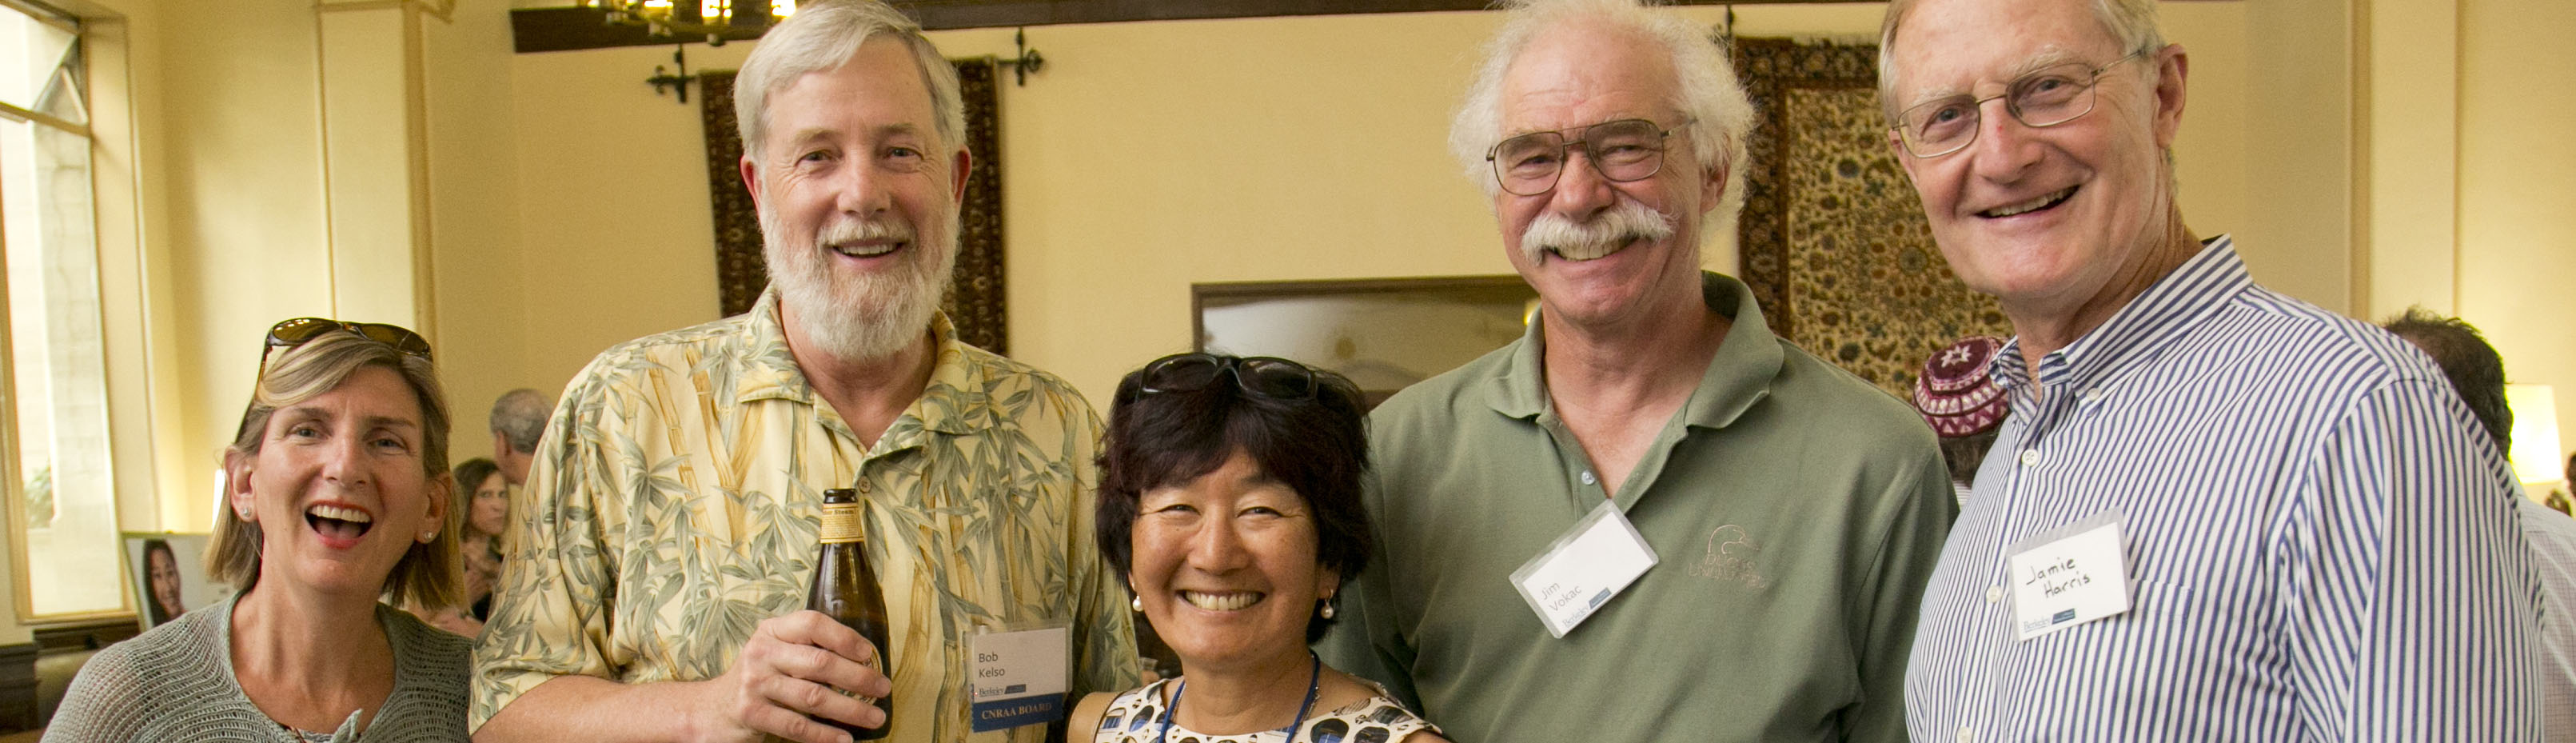 From left: Donna Chan, Bob Kelso, Stacey Baba, Jim Vocak, and a friend.